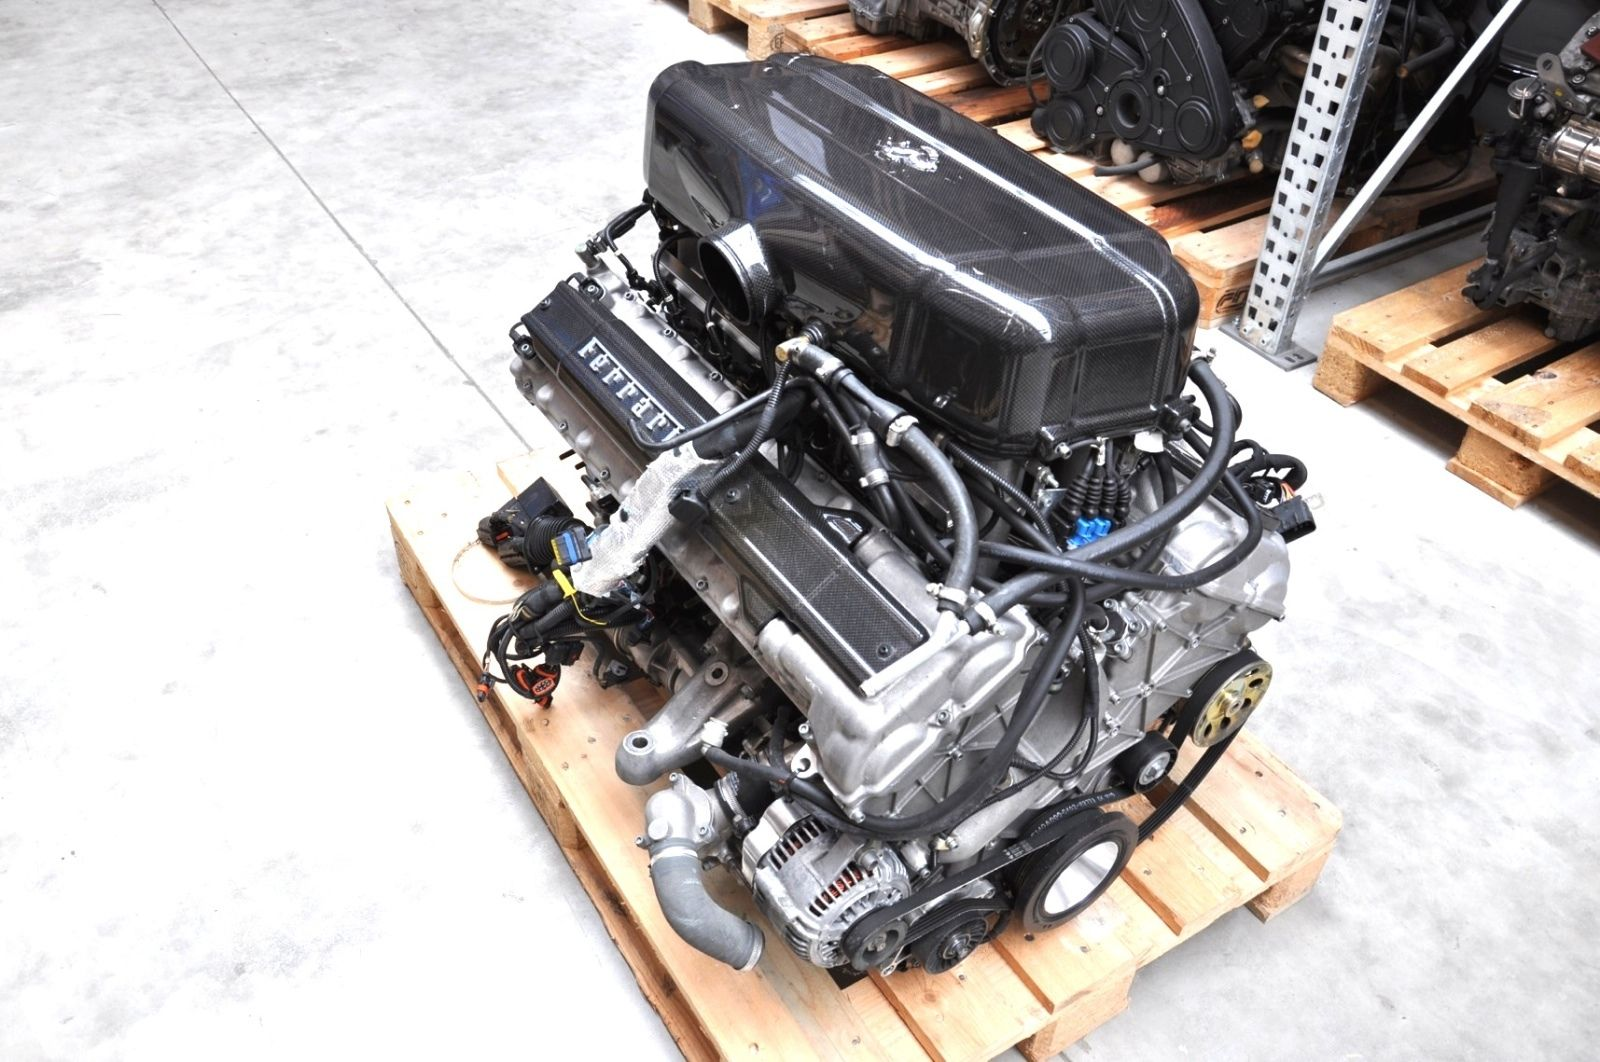 Ferrari Enzo V12 Engine Shows Up On Ebay Autoevolution